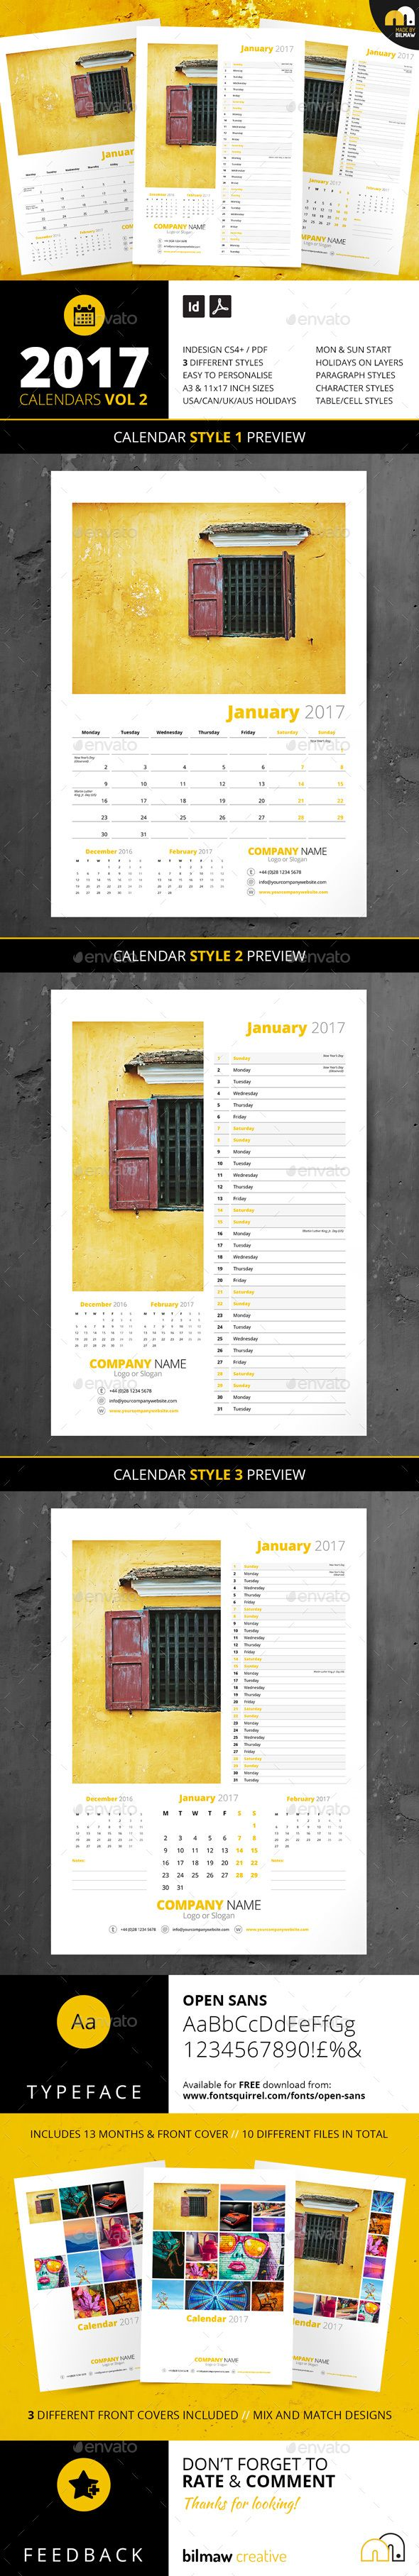 Calendars Vol 2 | Customizable Template | Branding | Photography promotion | 2017 CALENDARS VOL 2 | 3 Styles // A3 & 11×17 inch (Tabloid) Versions